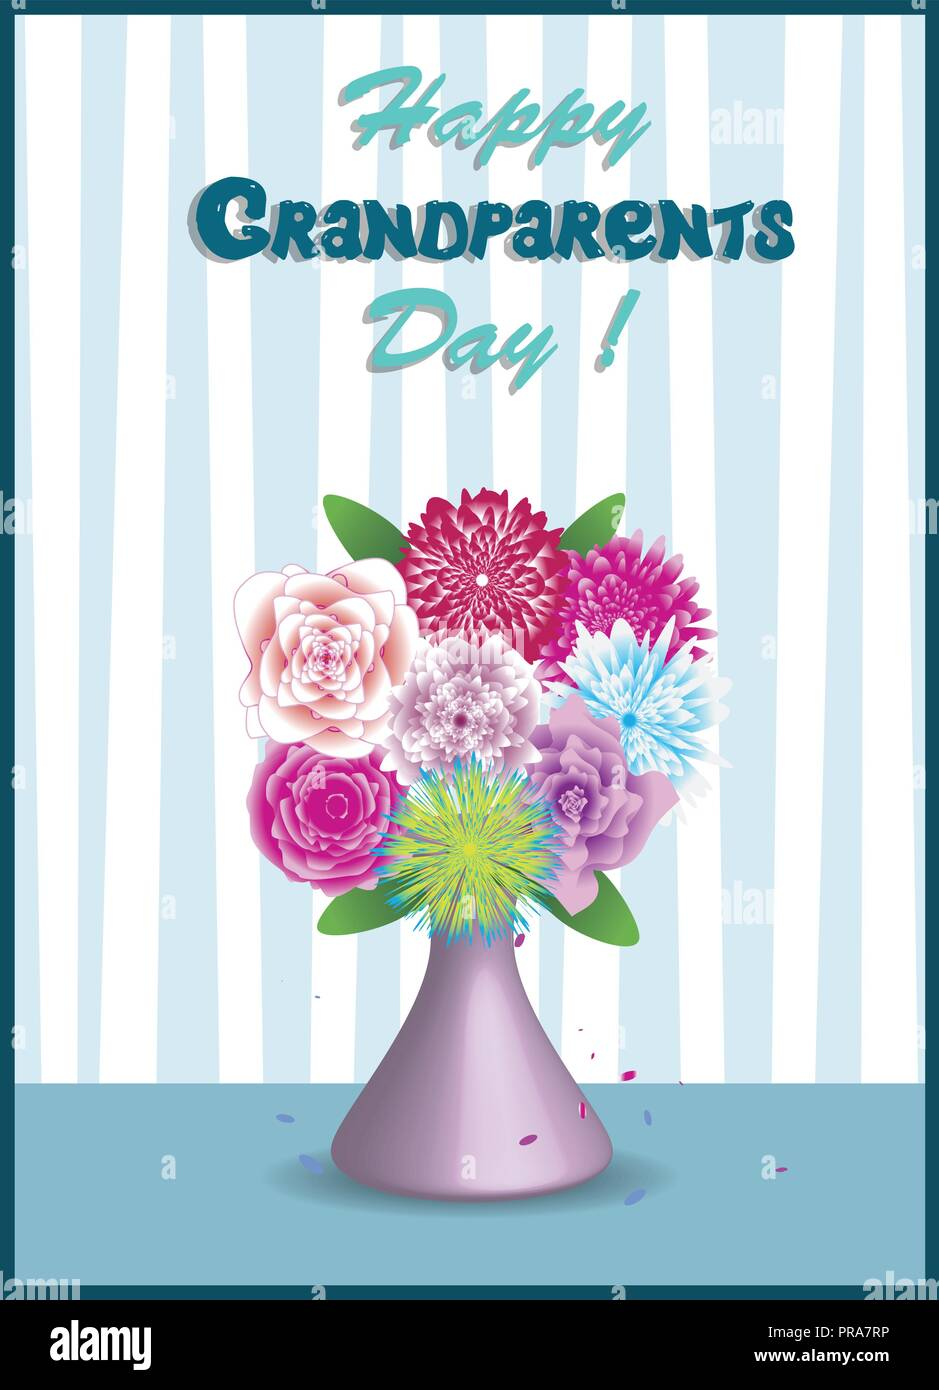 Happy Grandparents Day Greeting Card Vector Illustration Of Vase